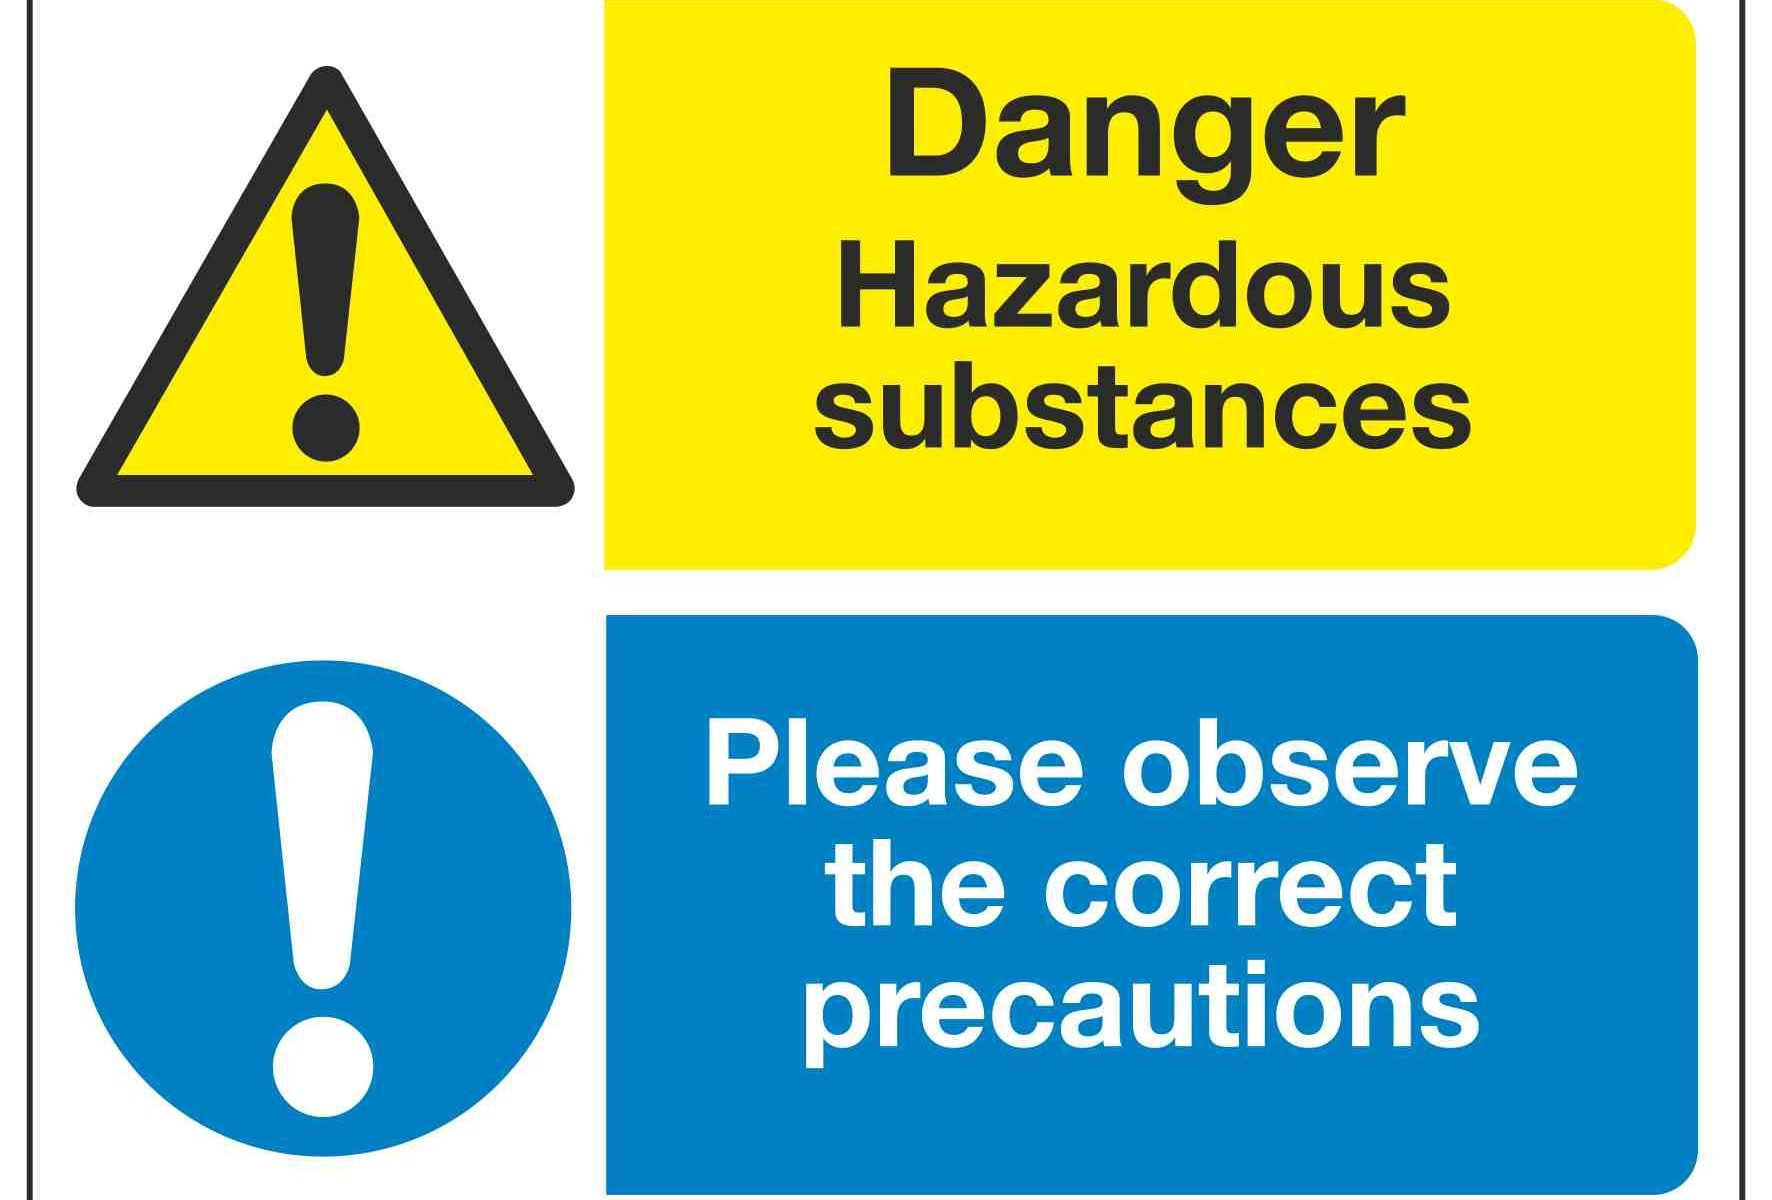 Dangerous Hazardous substances Please observe the correct precautions